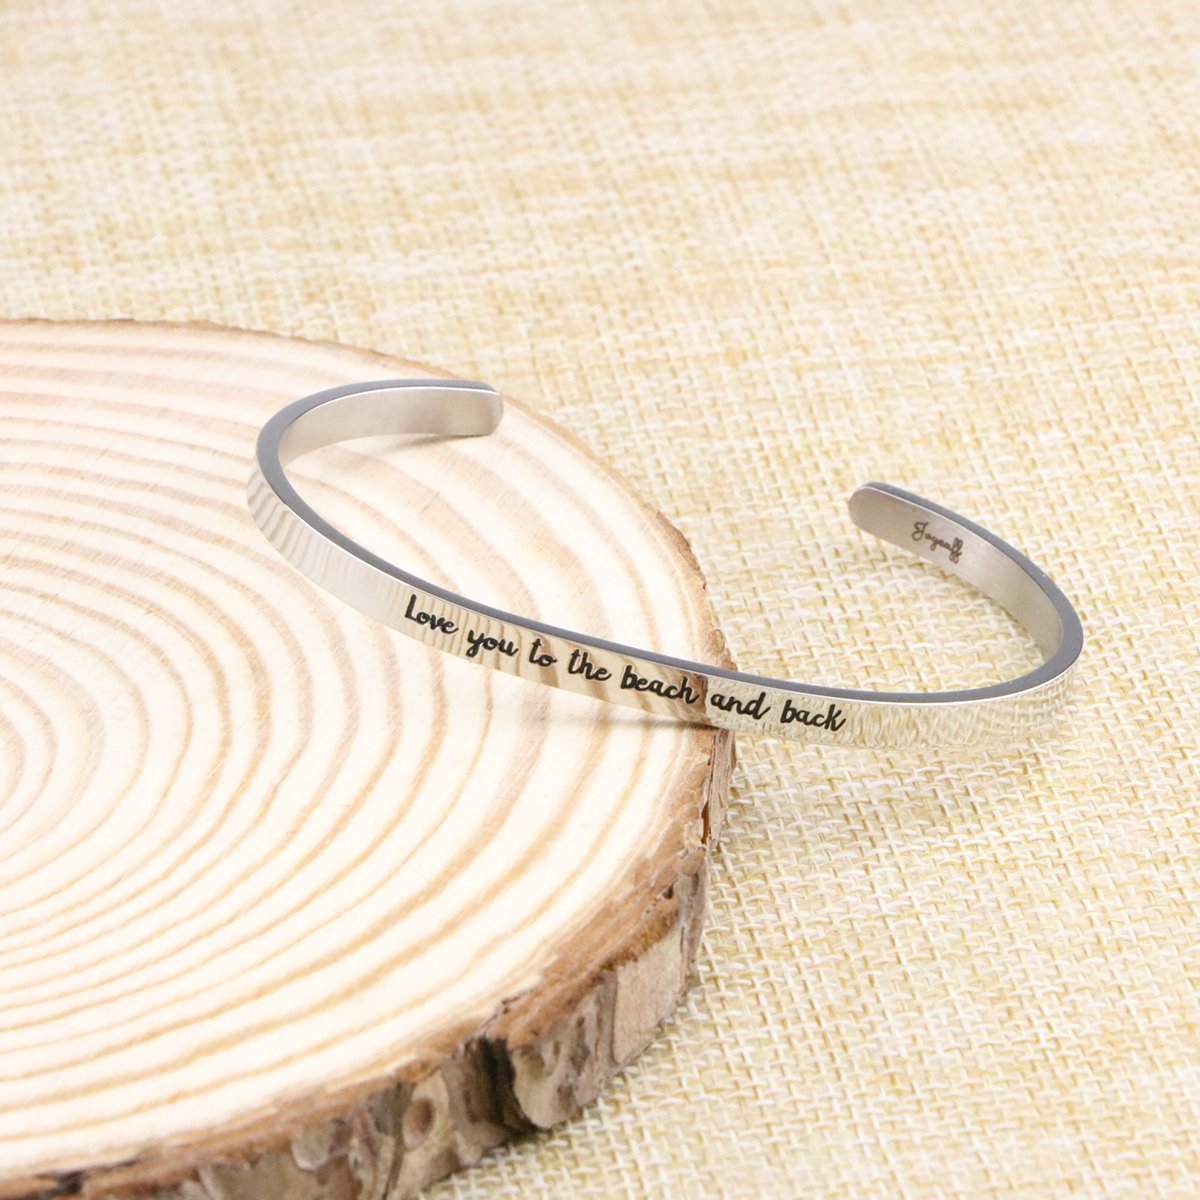 Joycuff Beach Jewelry Stainless Steel Cuff Bangle Bracelet Ocean Inspired Love You To The Beach And Back by Joycuff (Image #4)